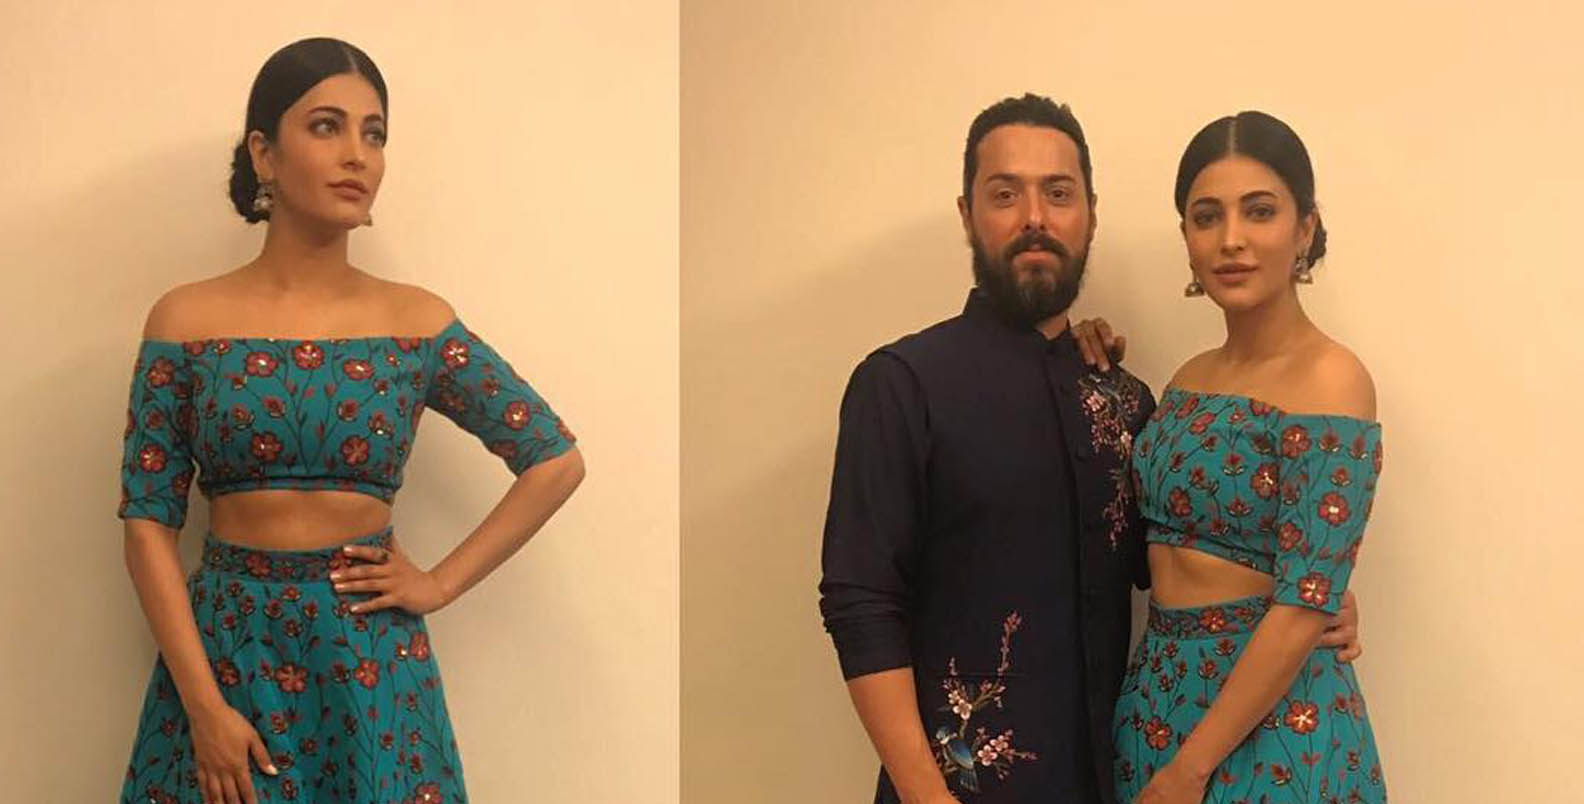 Shruti Haasan Confirmed Her Relationship With Michael Corsale